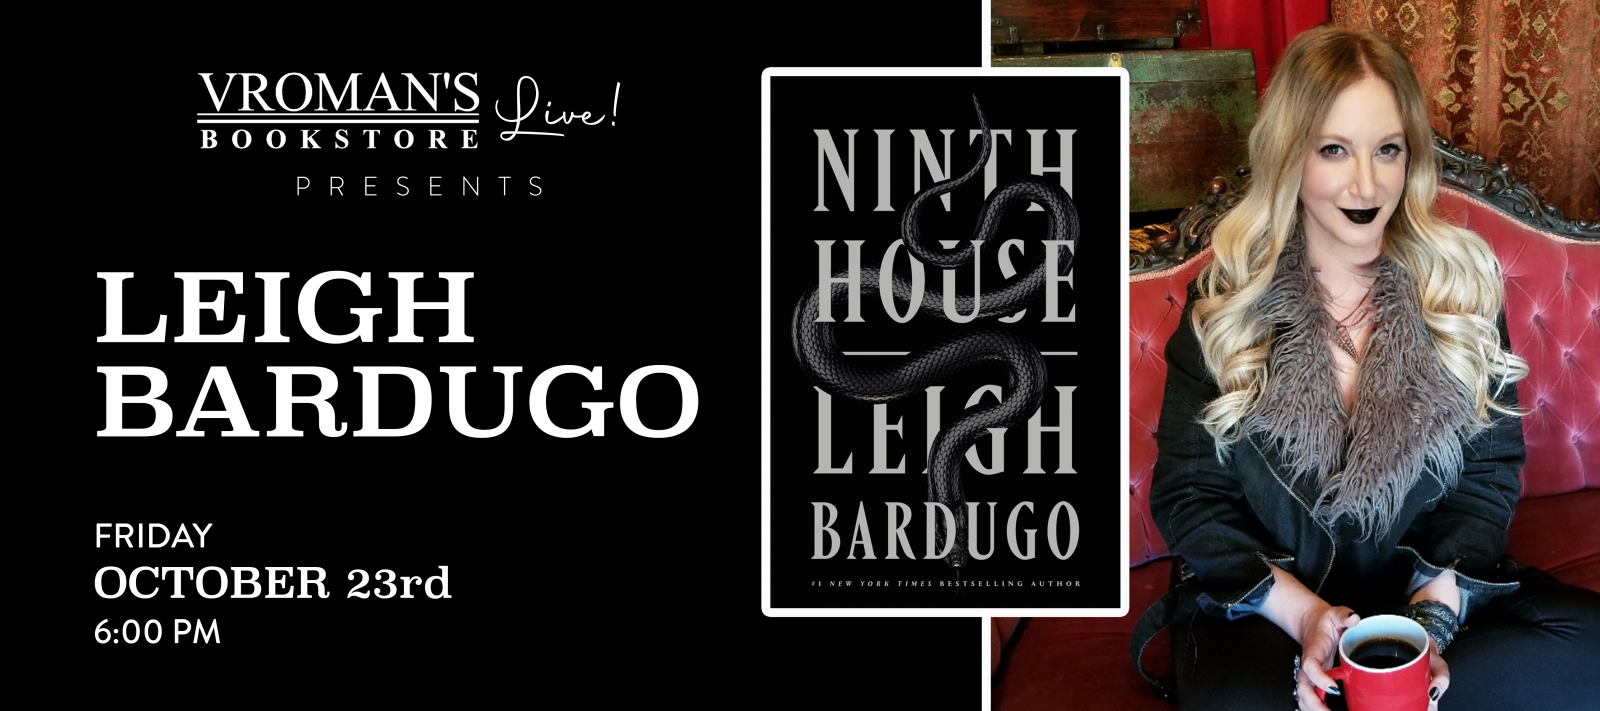 Vroman's Live presents Leigh Bardugo on Friday October 23 at 6pm